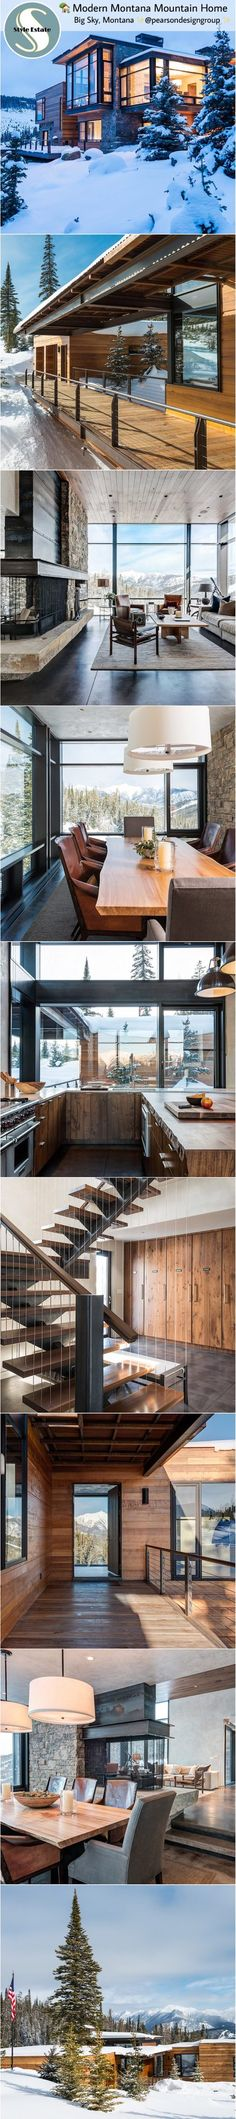 35 best blueprint homes images on pinterest house design exterior modern mountain home big sky montana malvernweather Image collections